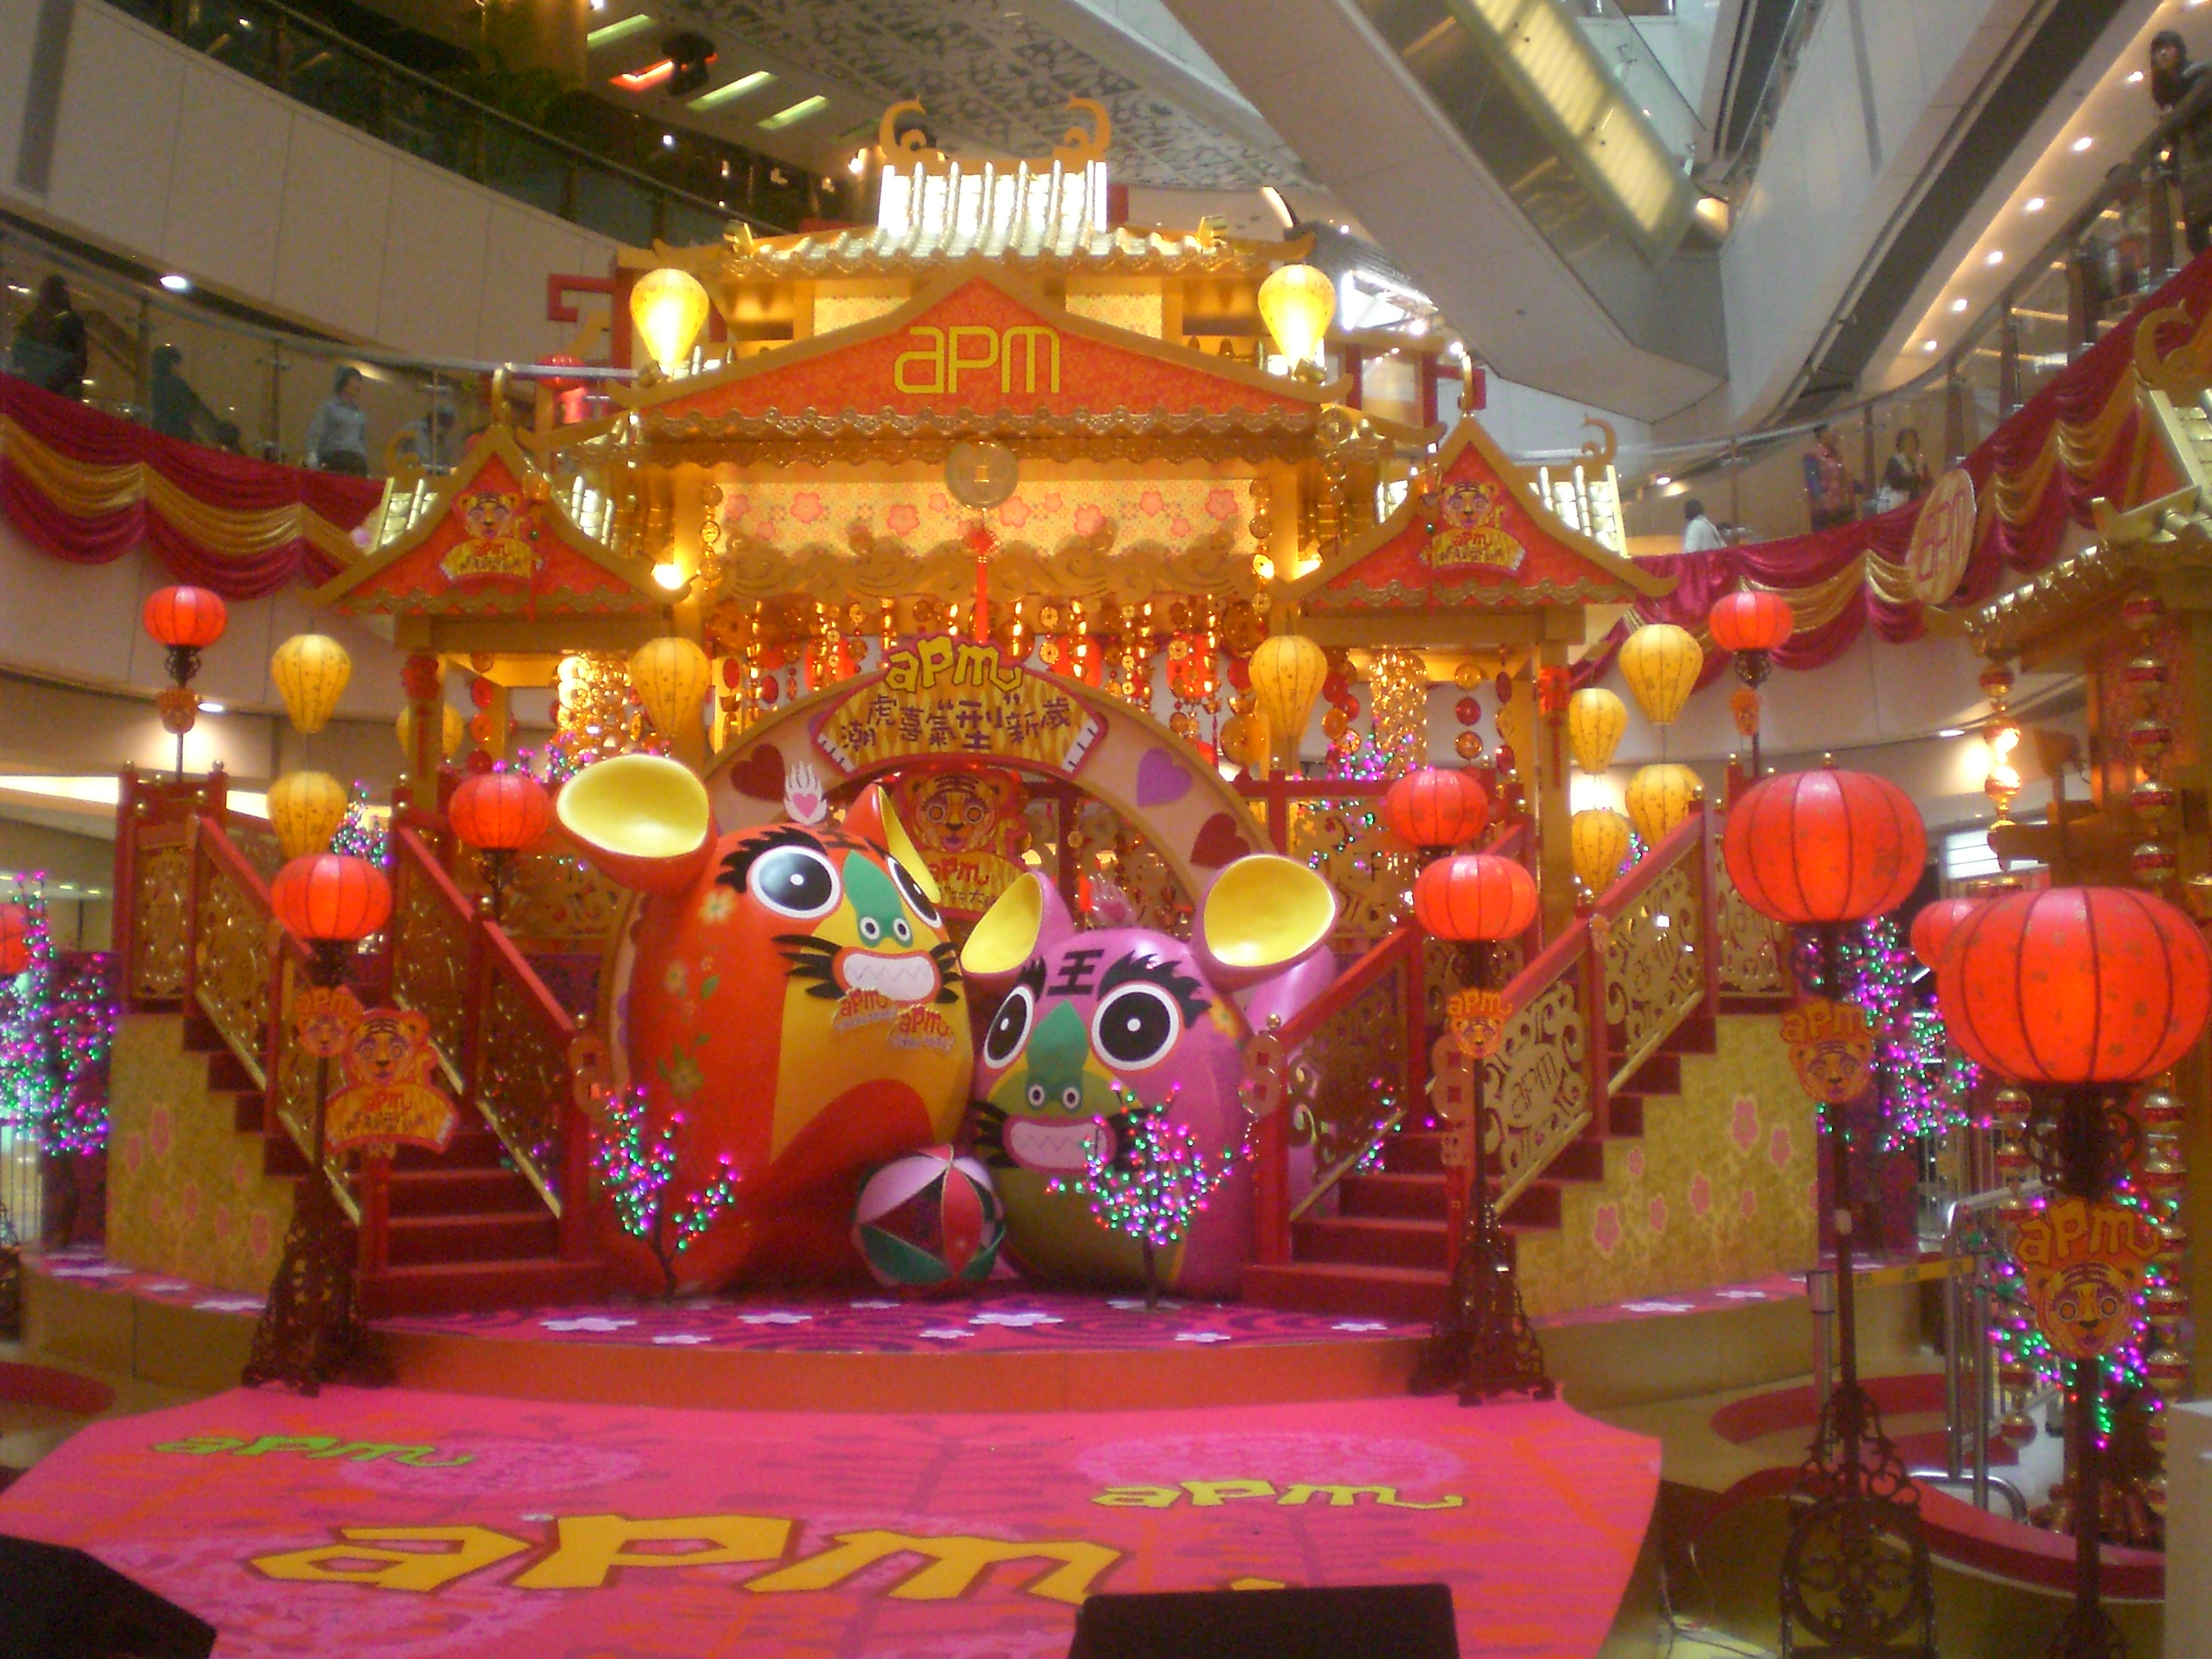 Apm Decoration File Hk Kwun Tong Apm Concourse New Year Decor 02 Jpg